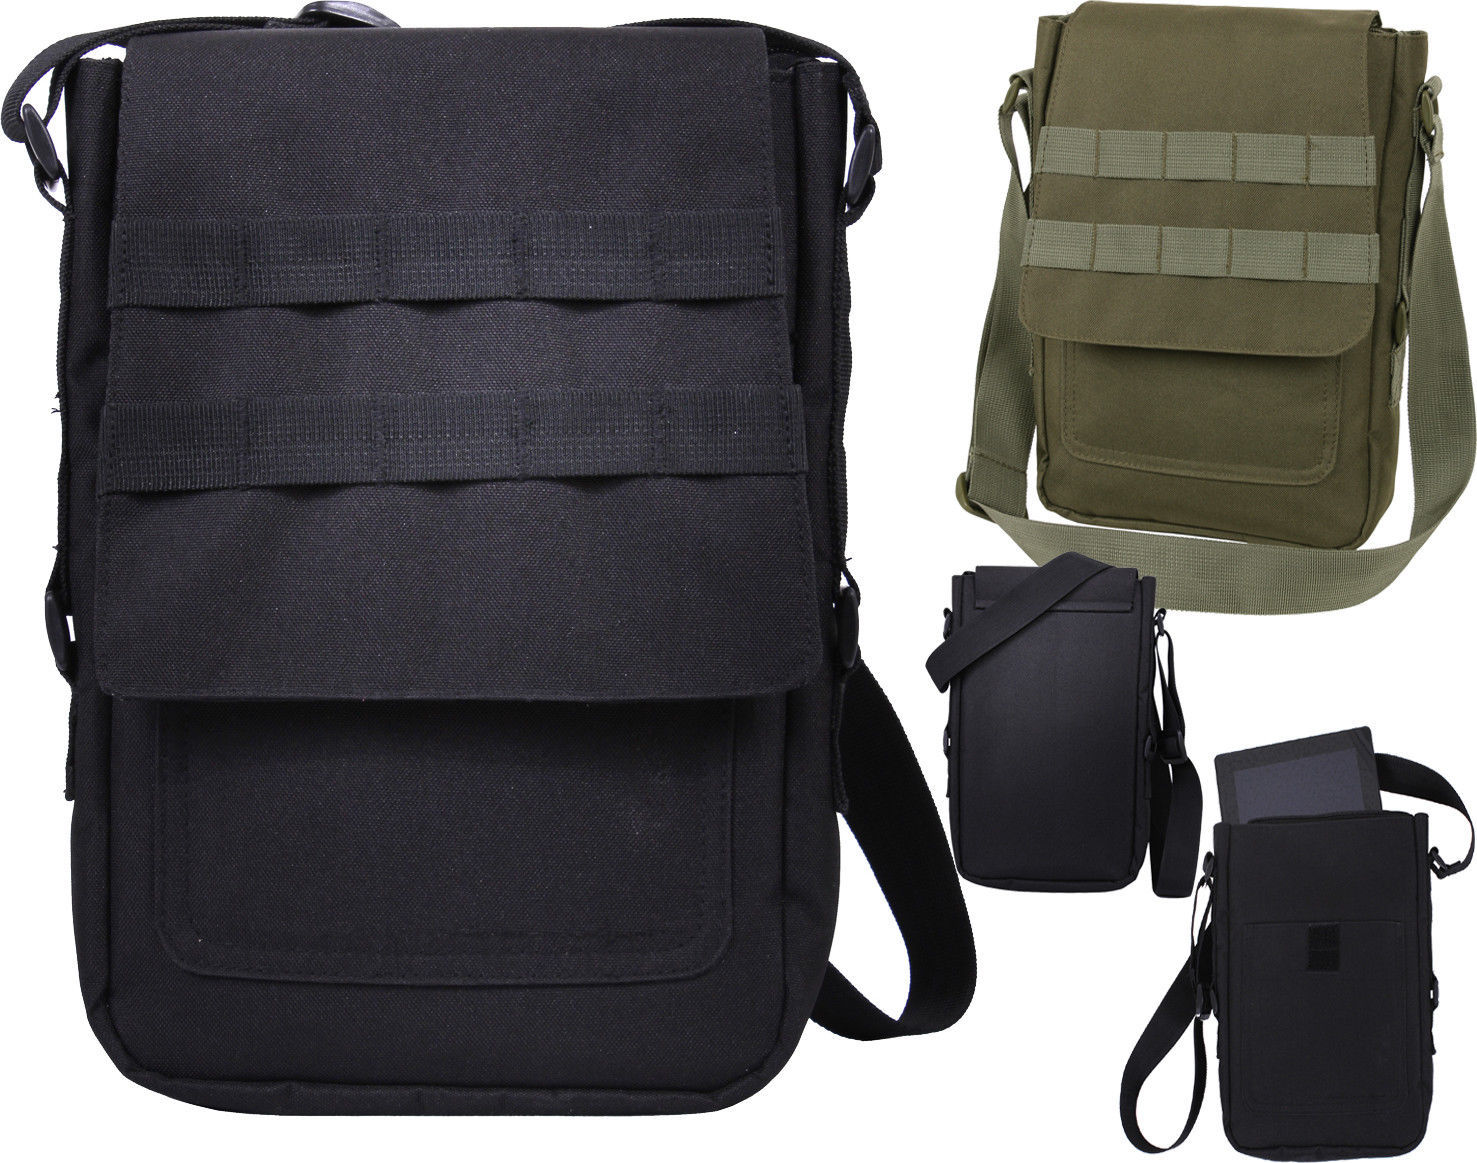 MOLLE Military Tech Tablet Travel Bag and 50 similar items c846cfb4132